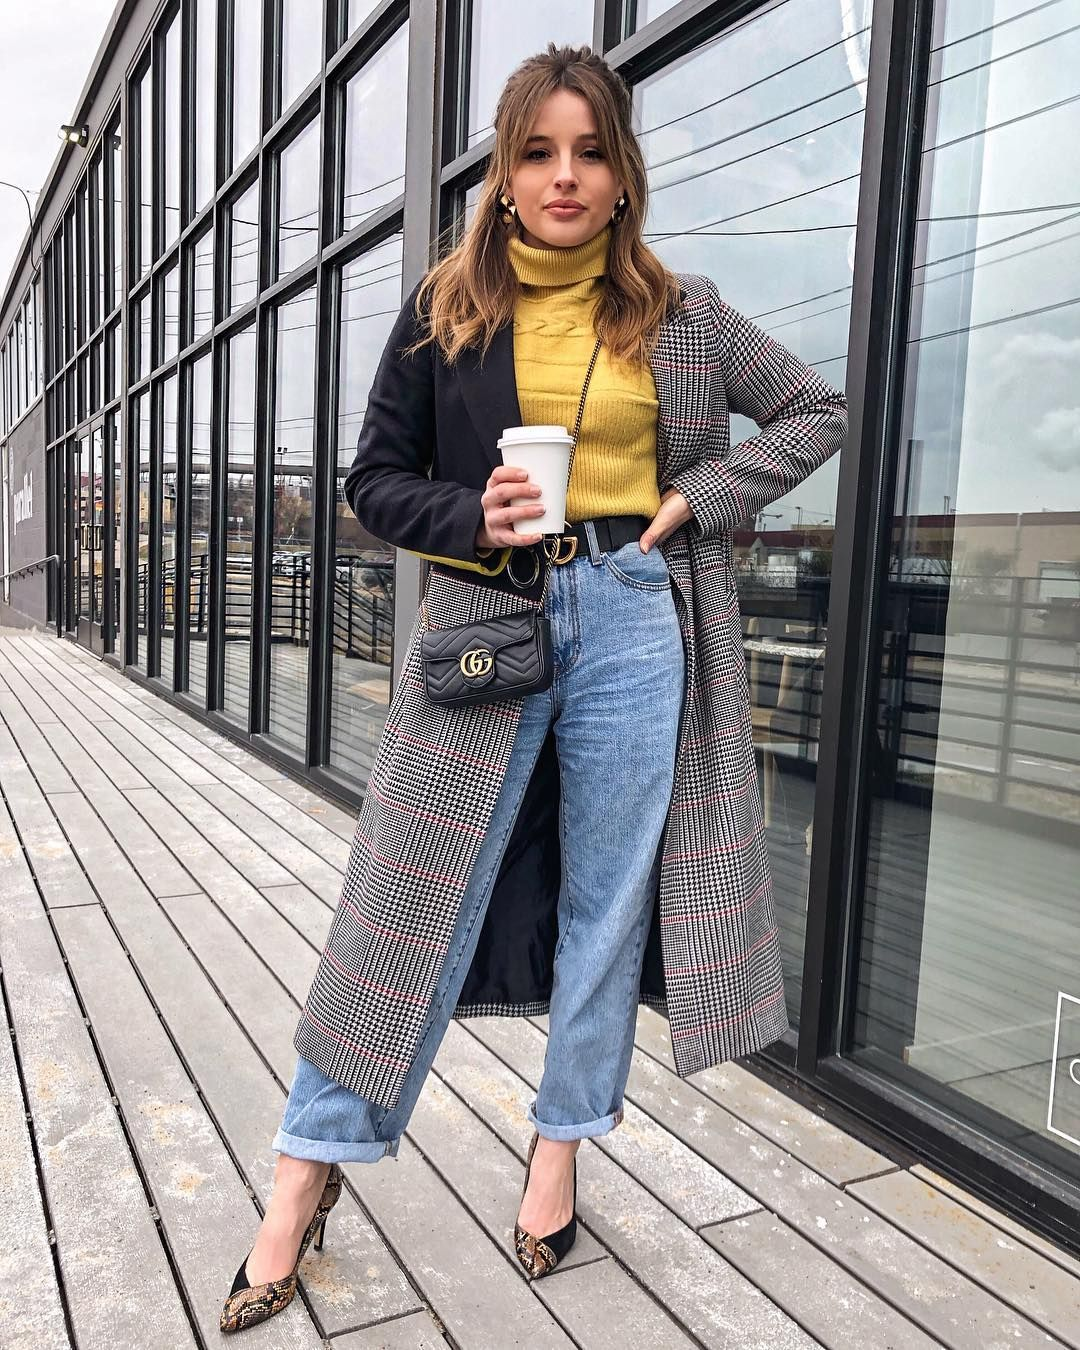 Taylor Hage On Instagram Another Day Another Yellow Sweater Perfect Outfit For A Date Night Jason Took Me To My Favorite Movie The Grinch